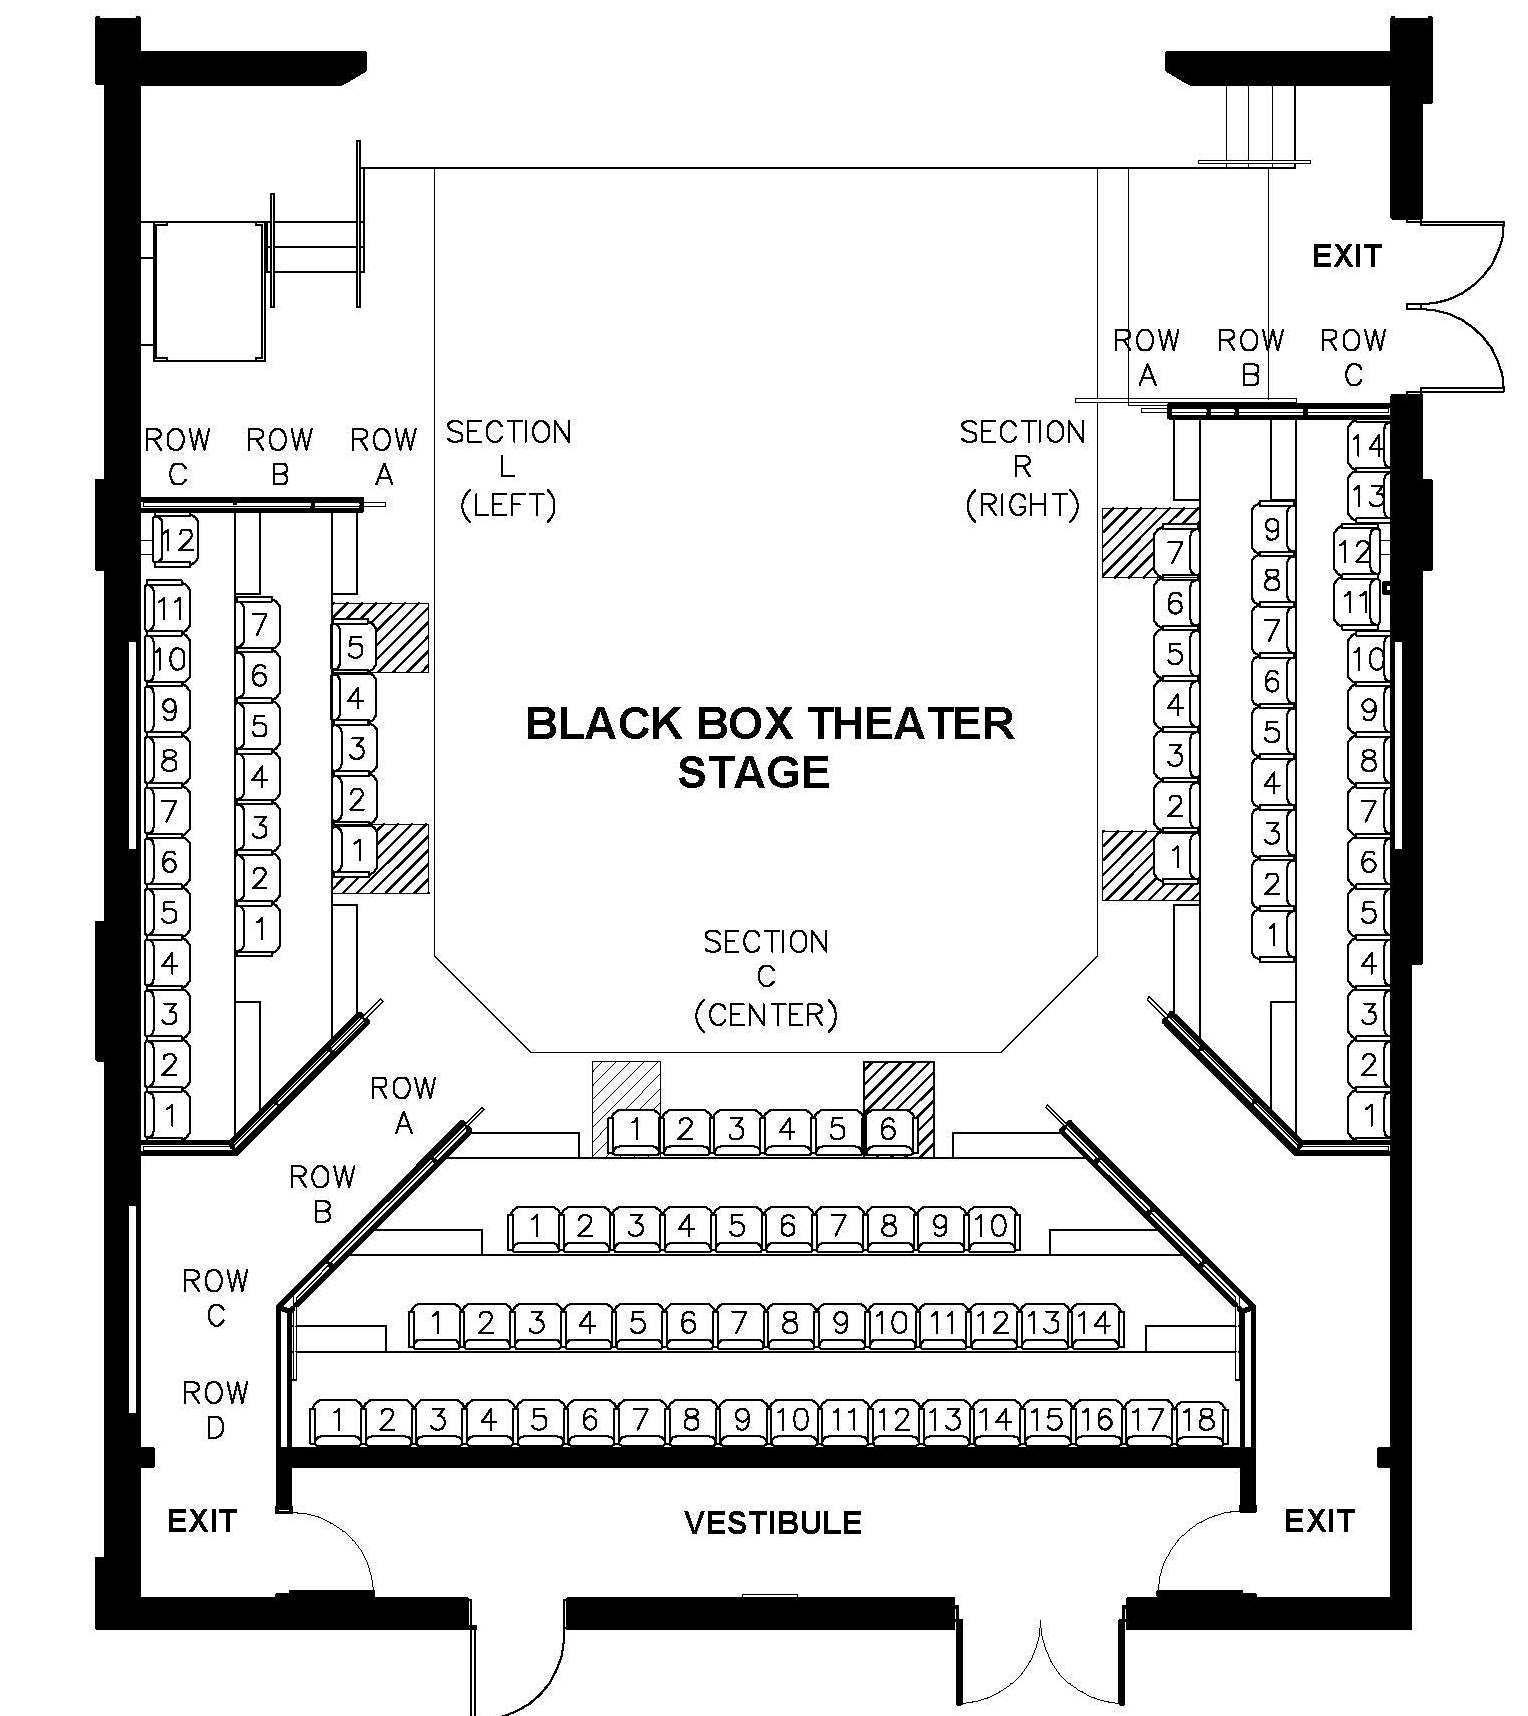 Theatre Seating Dimensions Google Search Theater Plan Theatre Seating Dimensions Google Search Theater Plan Theatre Architecture Theater Architecture